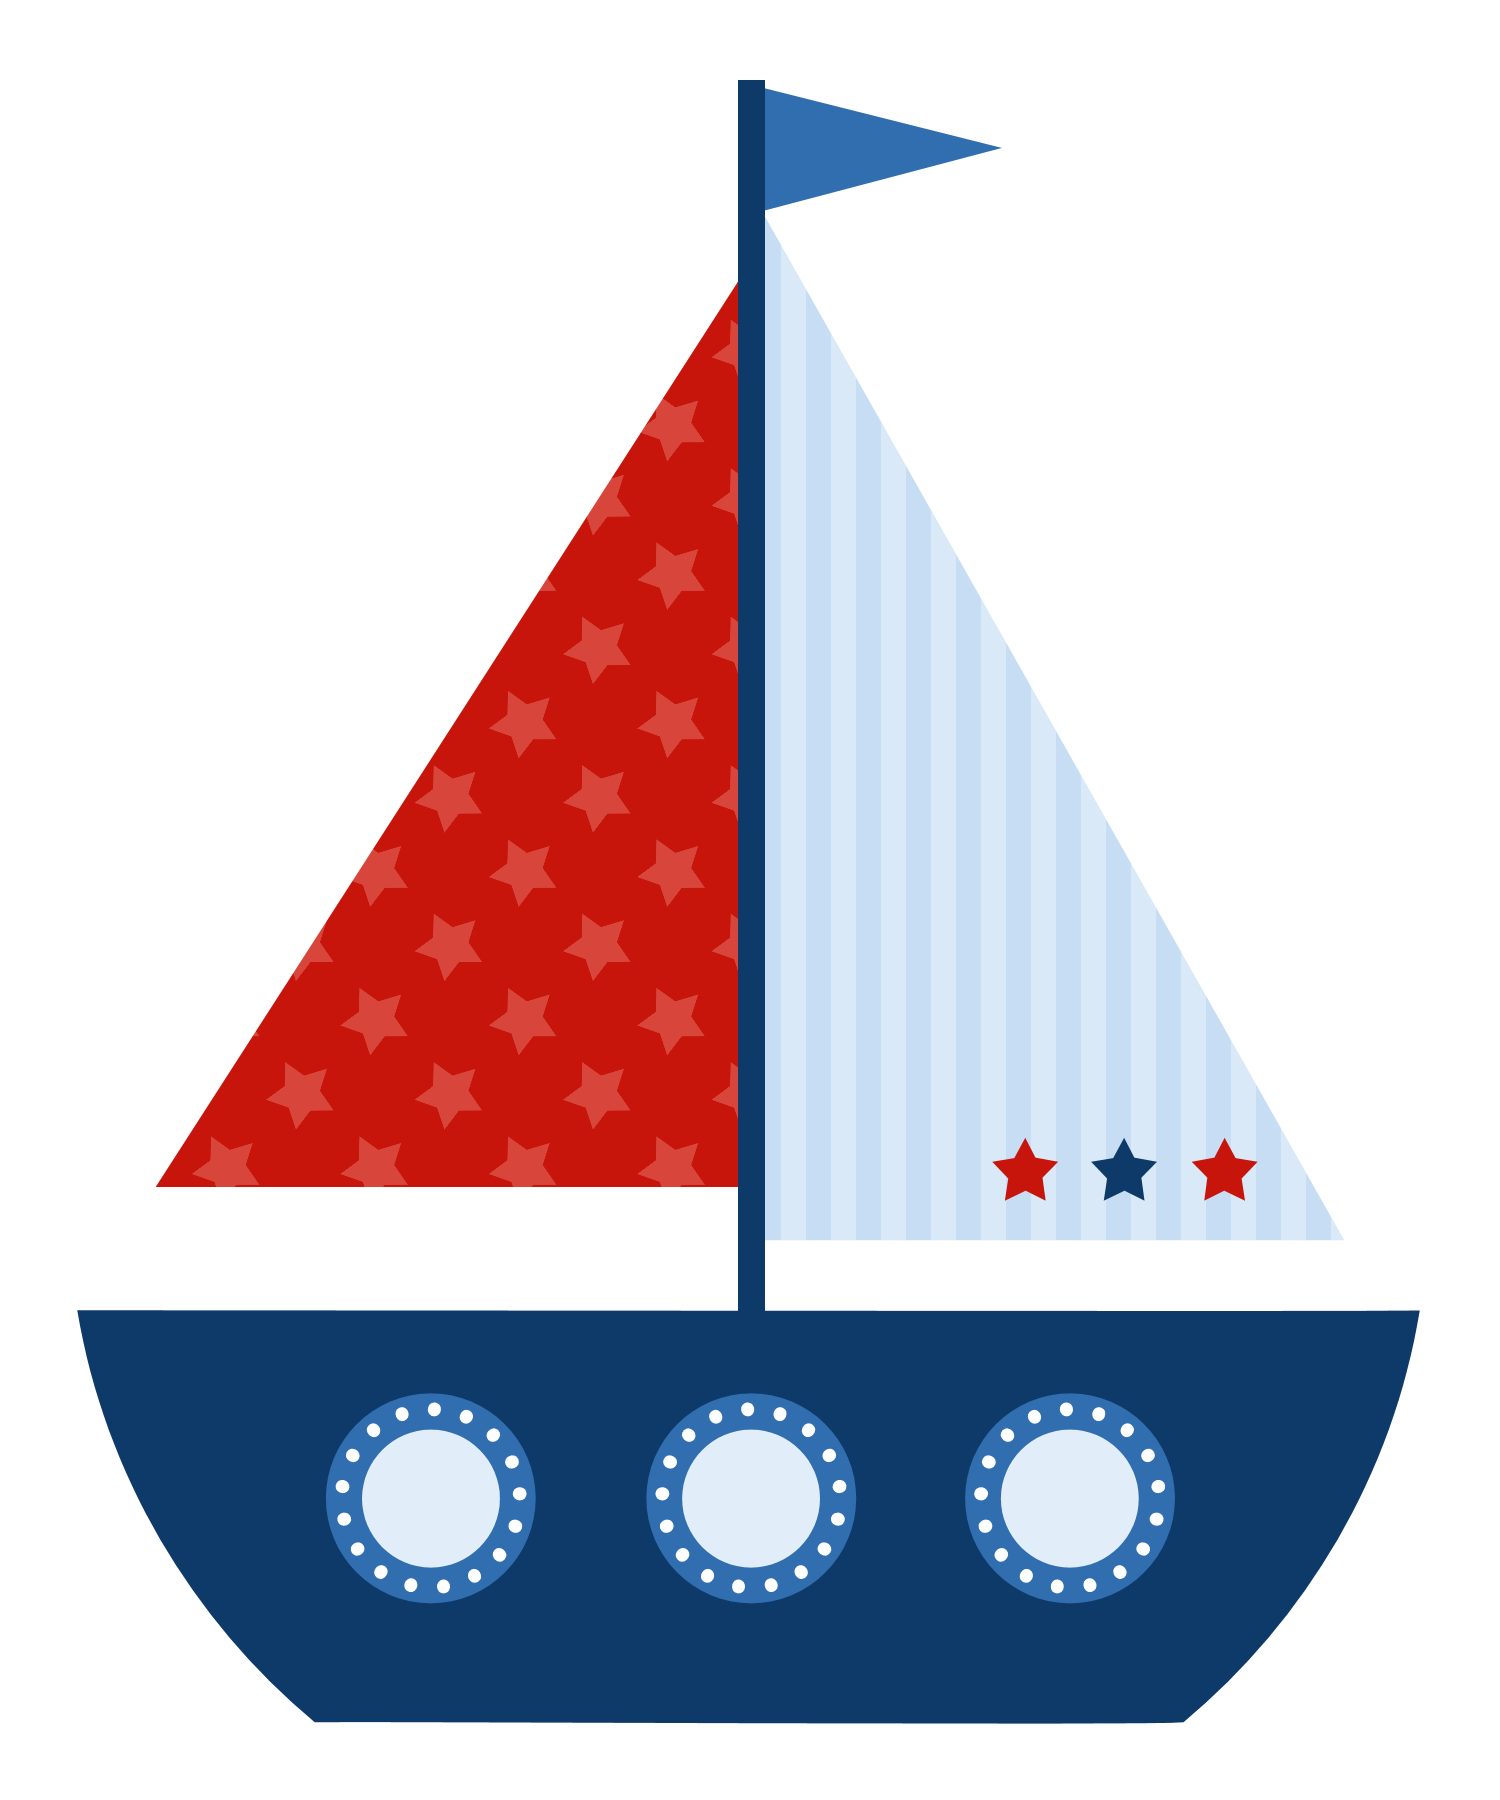 Paper clipart sailboat. Photo shared on meowchat